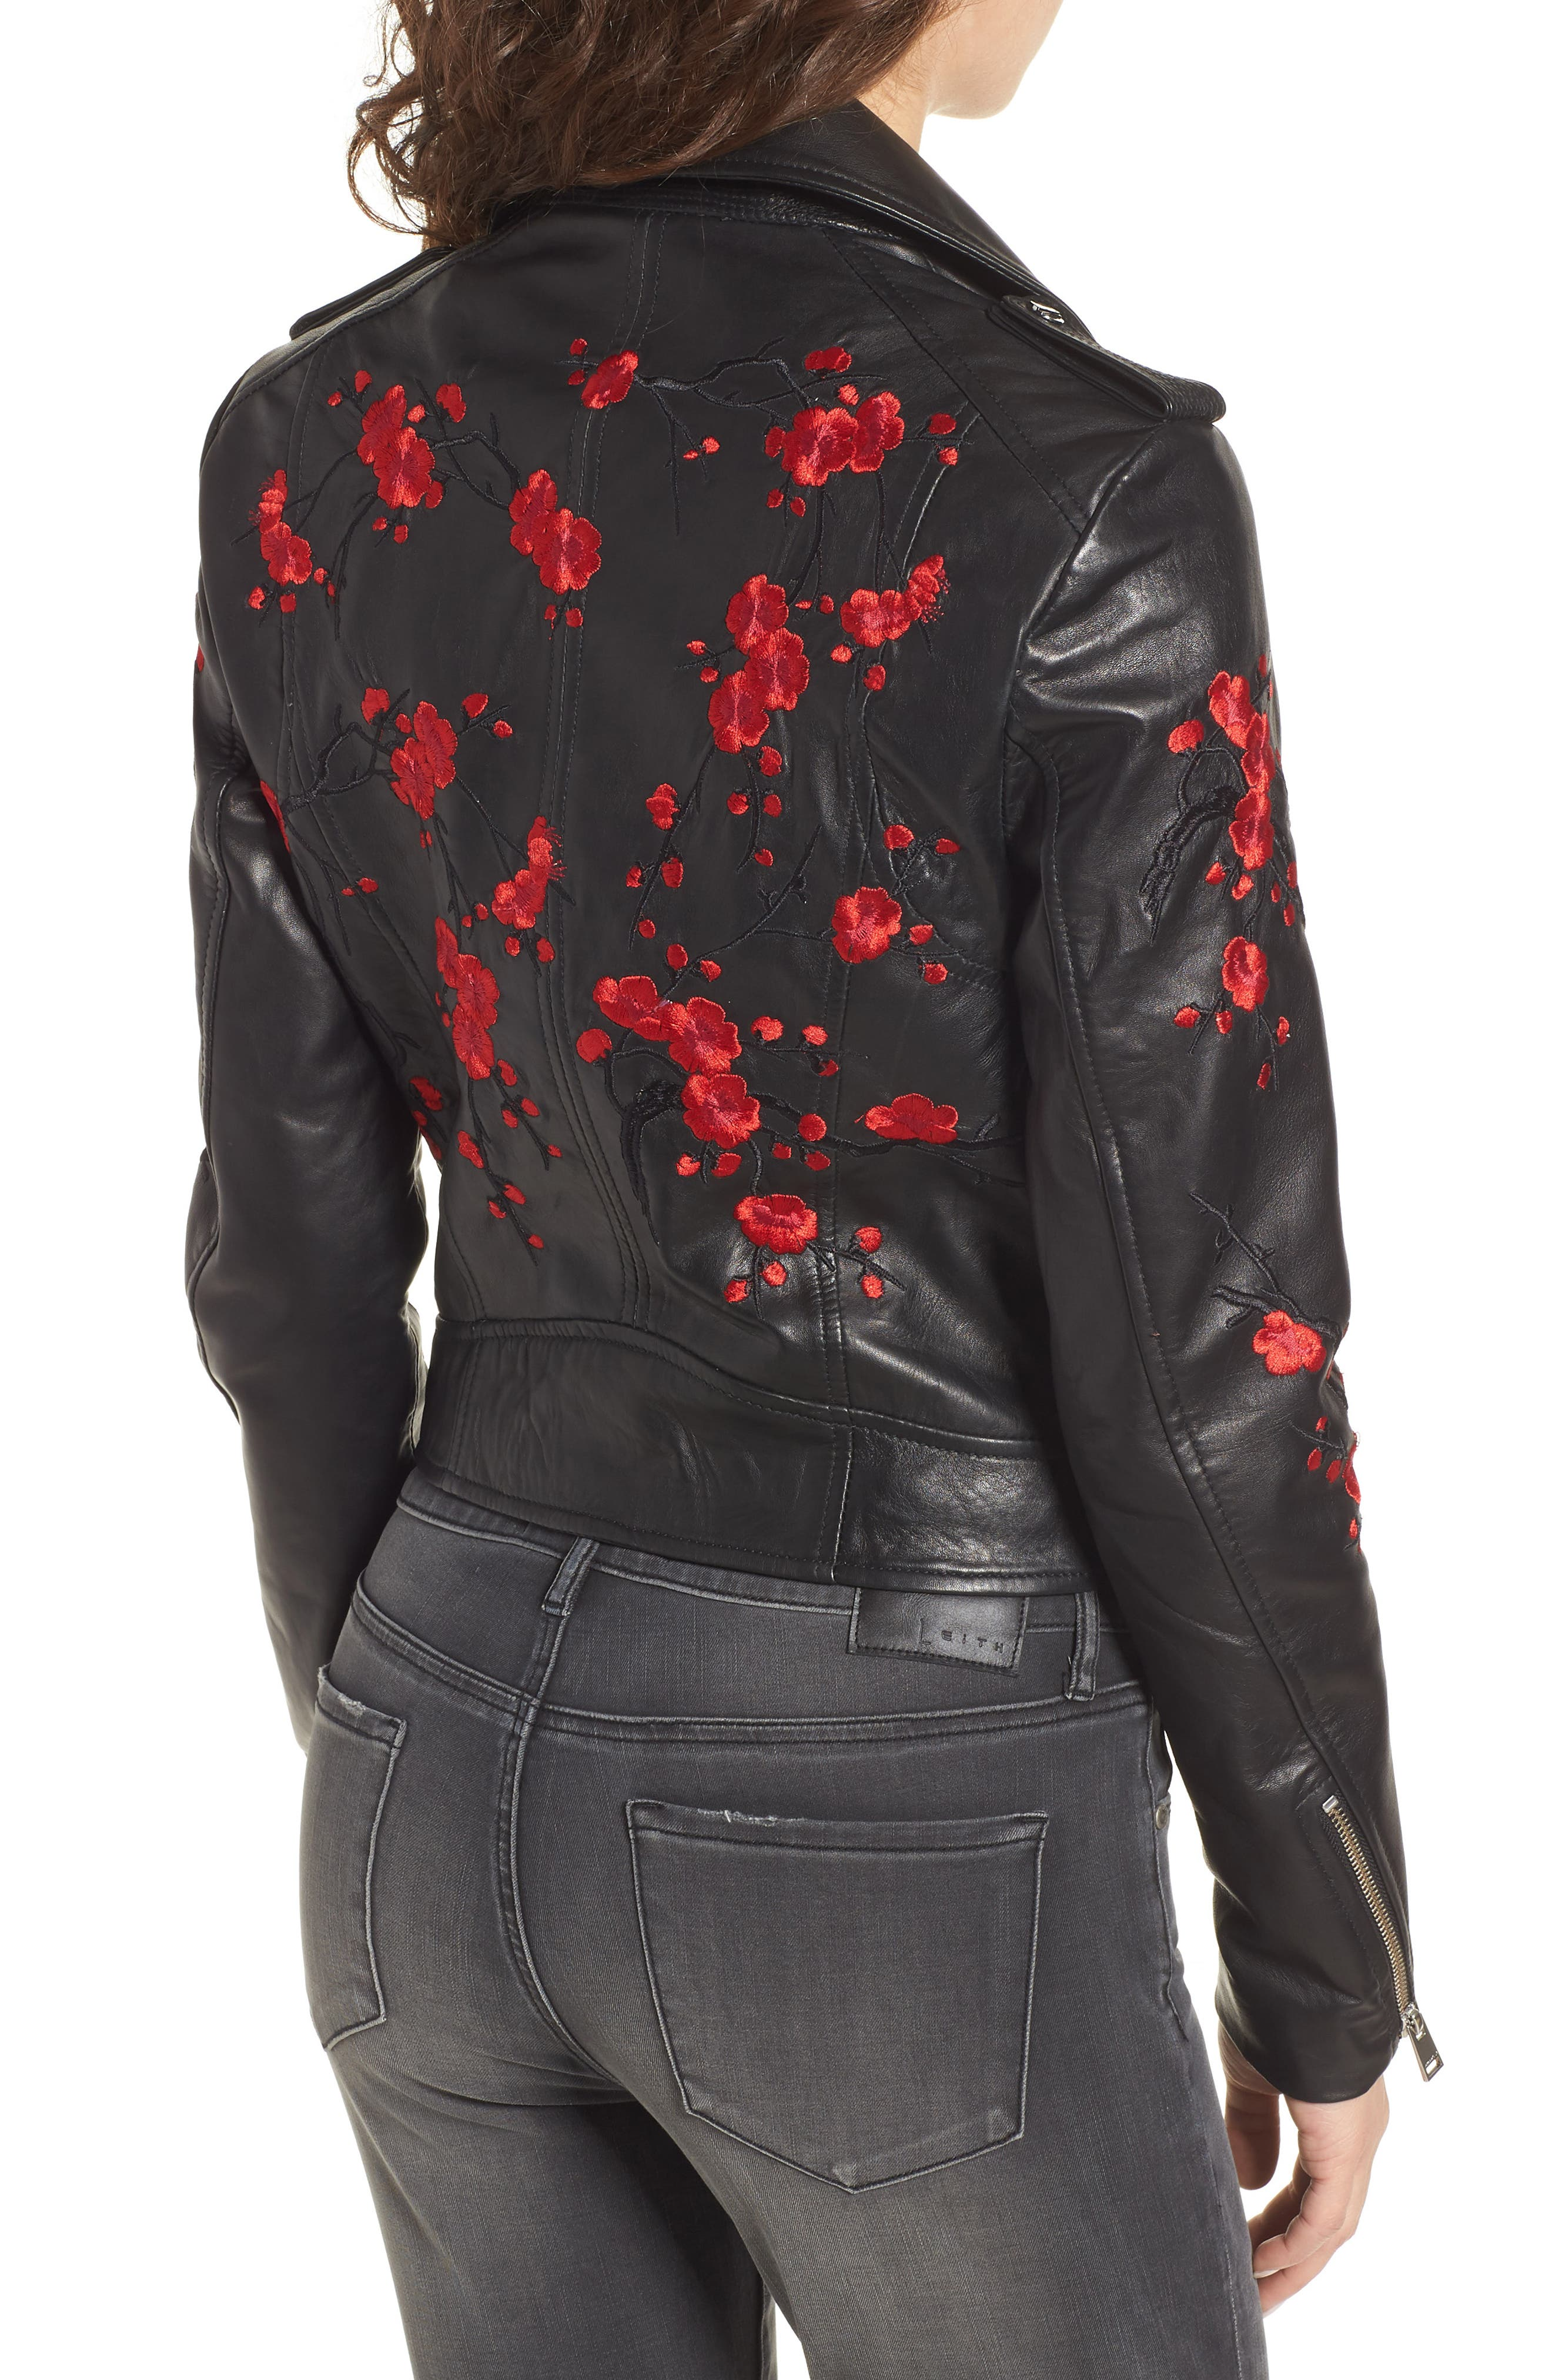 Embroidered Leather Moto Jacket,                             Alternate thumbnail 2, color,                             BLACK WITH RED EMBROIDERY